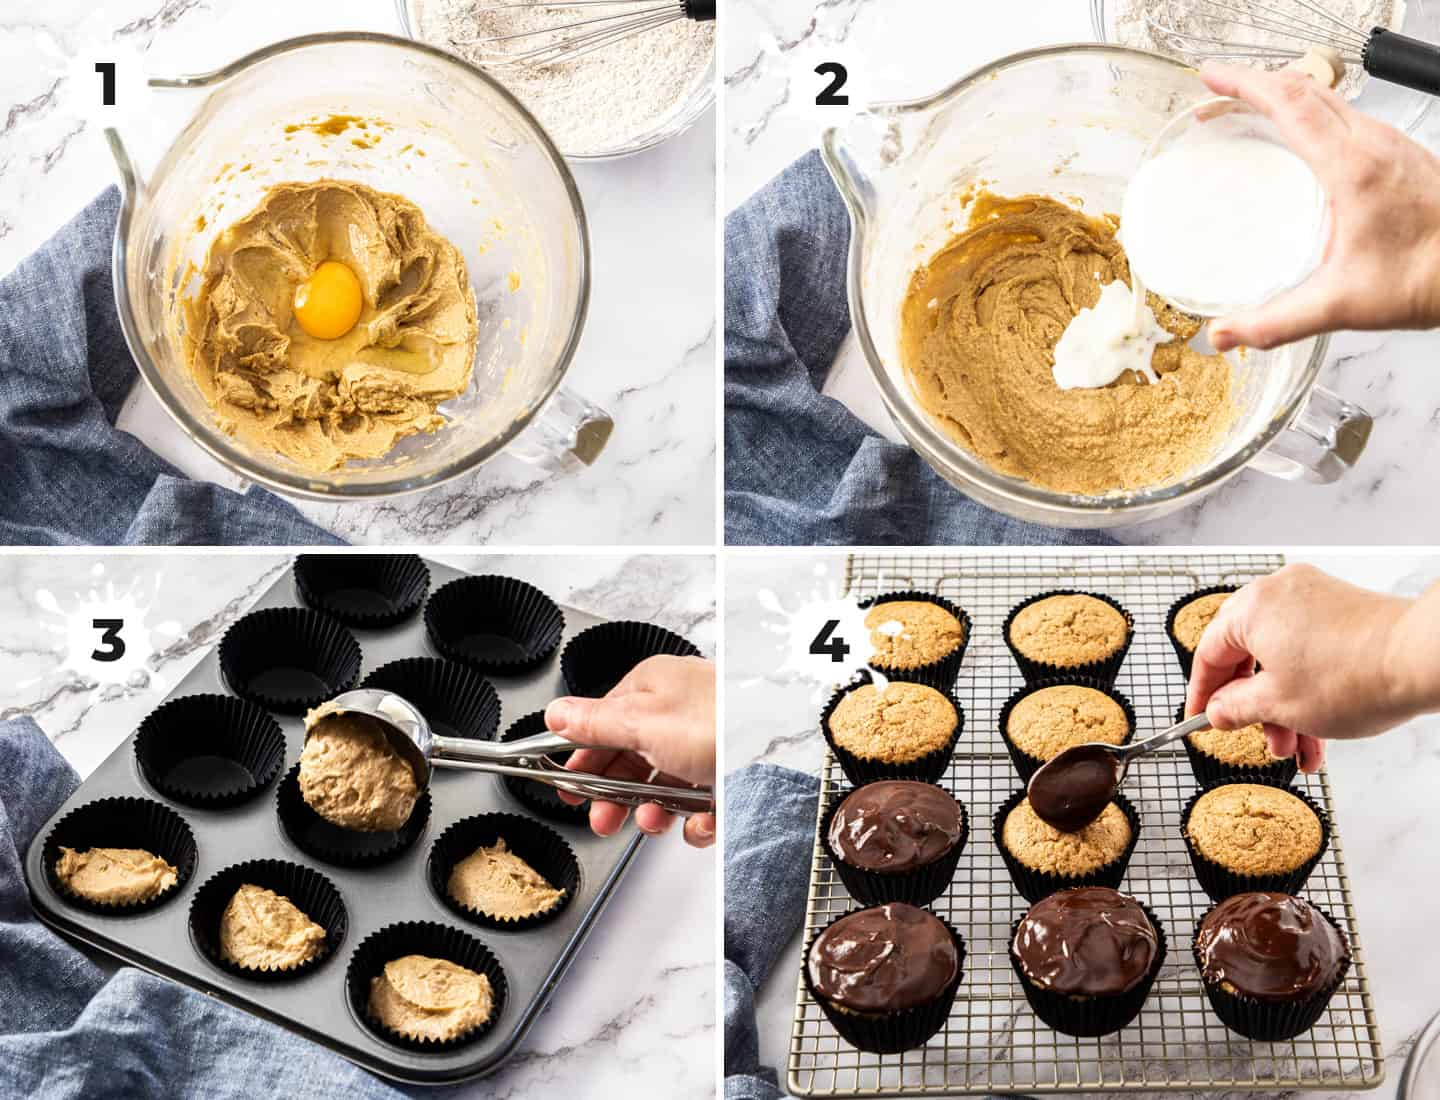 4 images showing the making of the batter for cinnamon cupcakes.